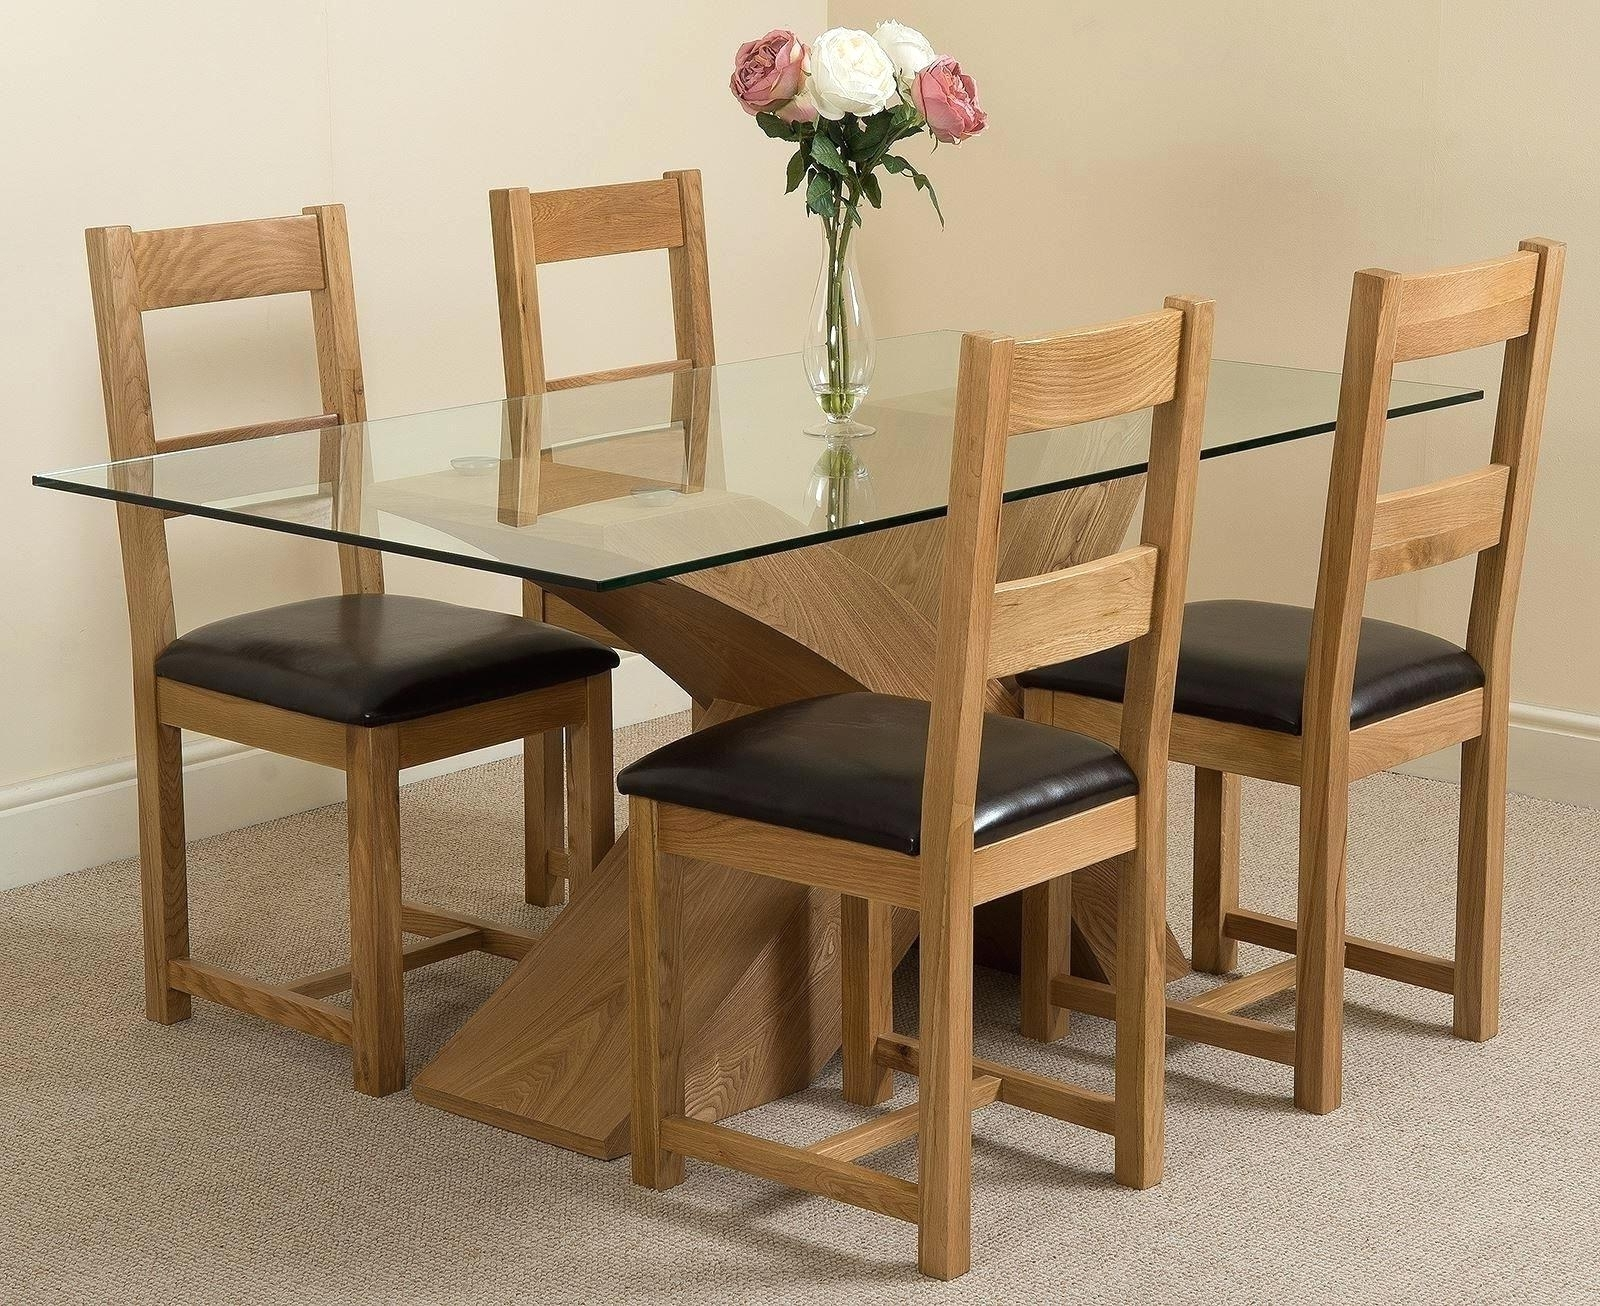 Light Oak Dining Tables And Chairs In Latest Chair : Light Oak Dining Table And Chairs Second Hand Furniture Uk (View 10 of 25)